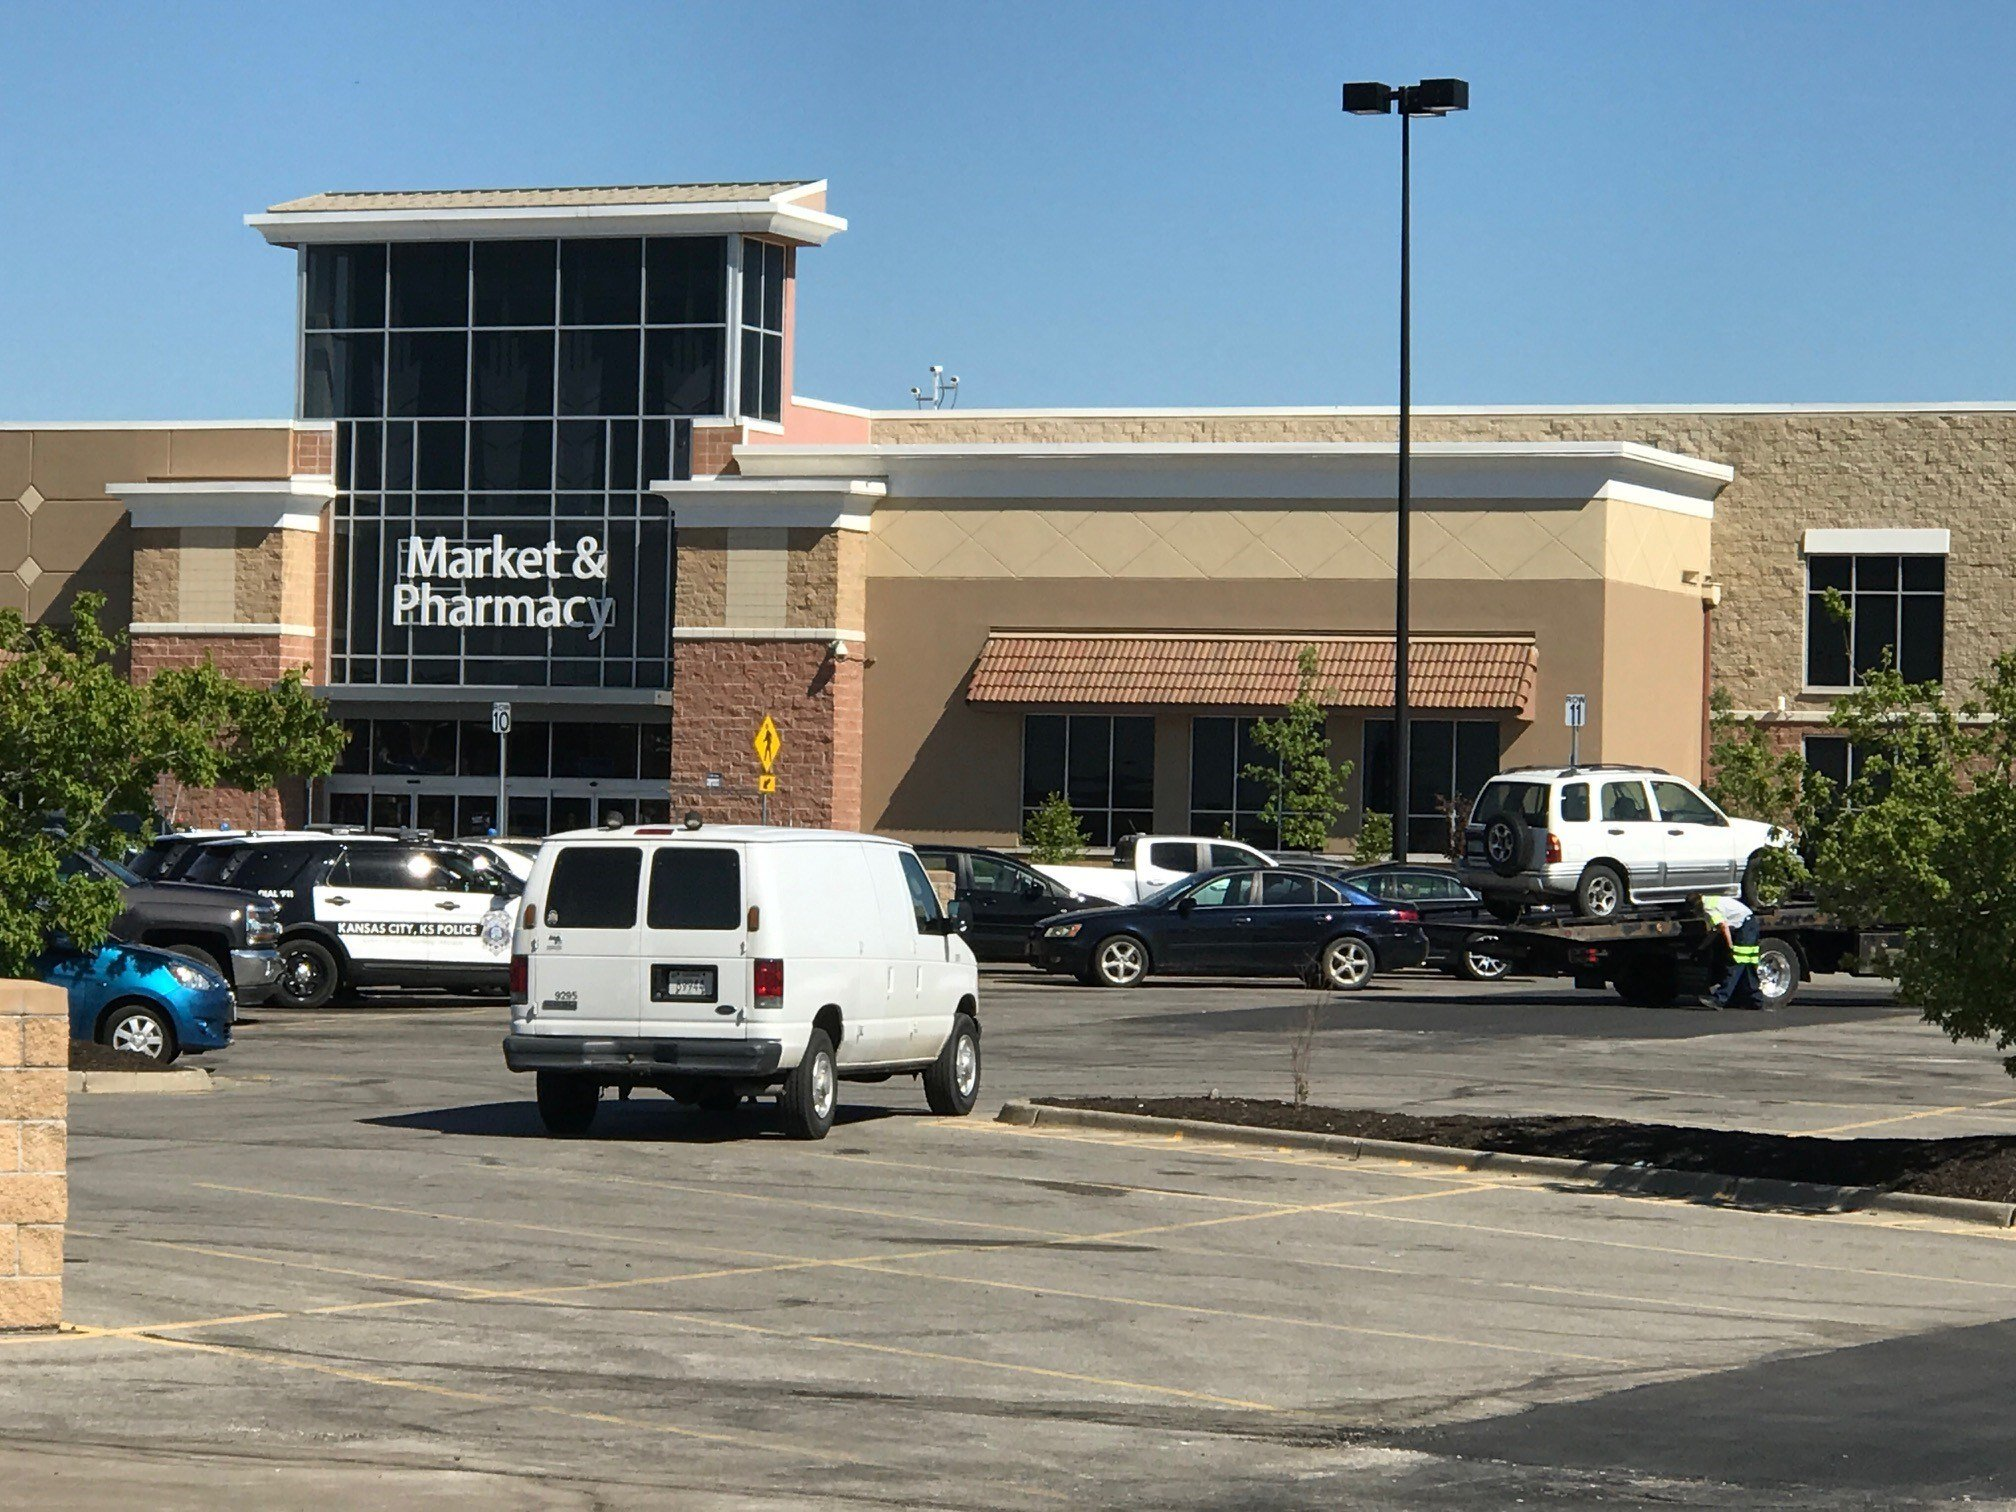 The two individuals police found in the parking lot of Walmart died from carbon monoxide poisoning, authorities said Tuesday. (Eric Smith/KCTV)